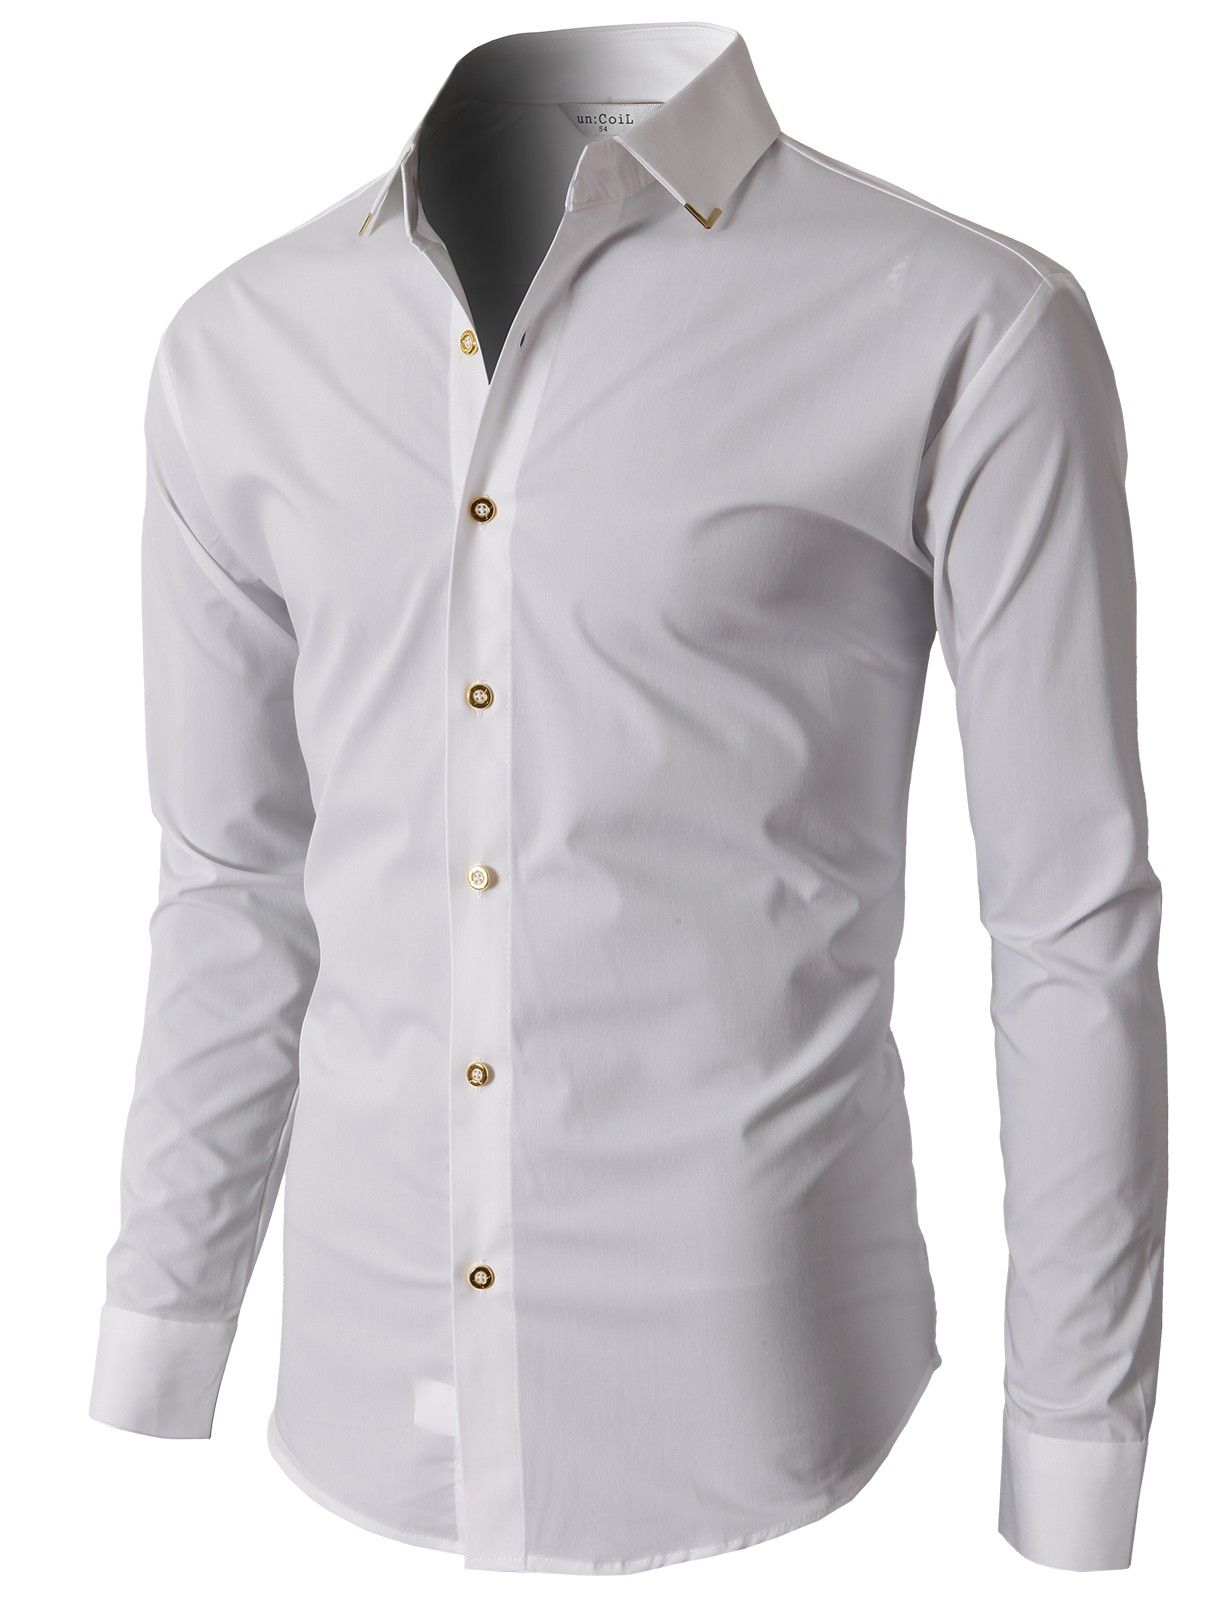 Doublju Mens Dress Shirts With Gold Pointed Collar And Gold Button ...